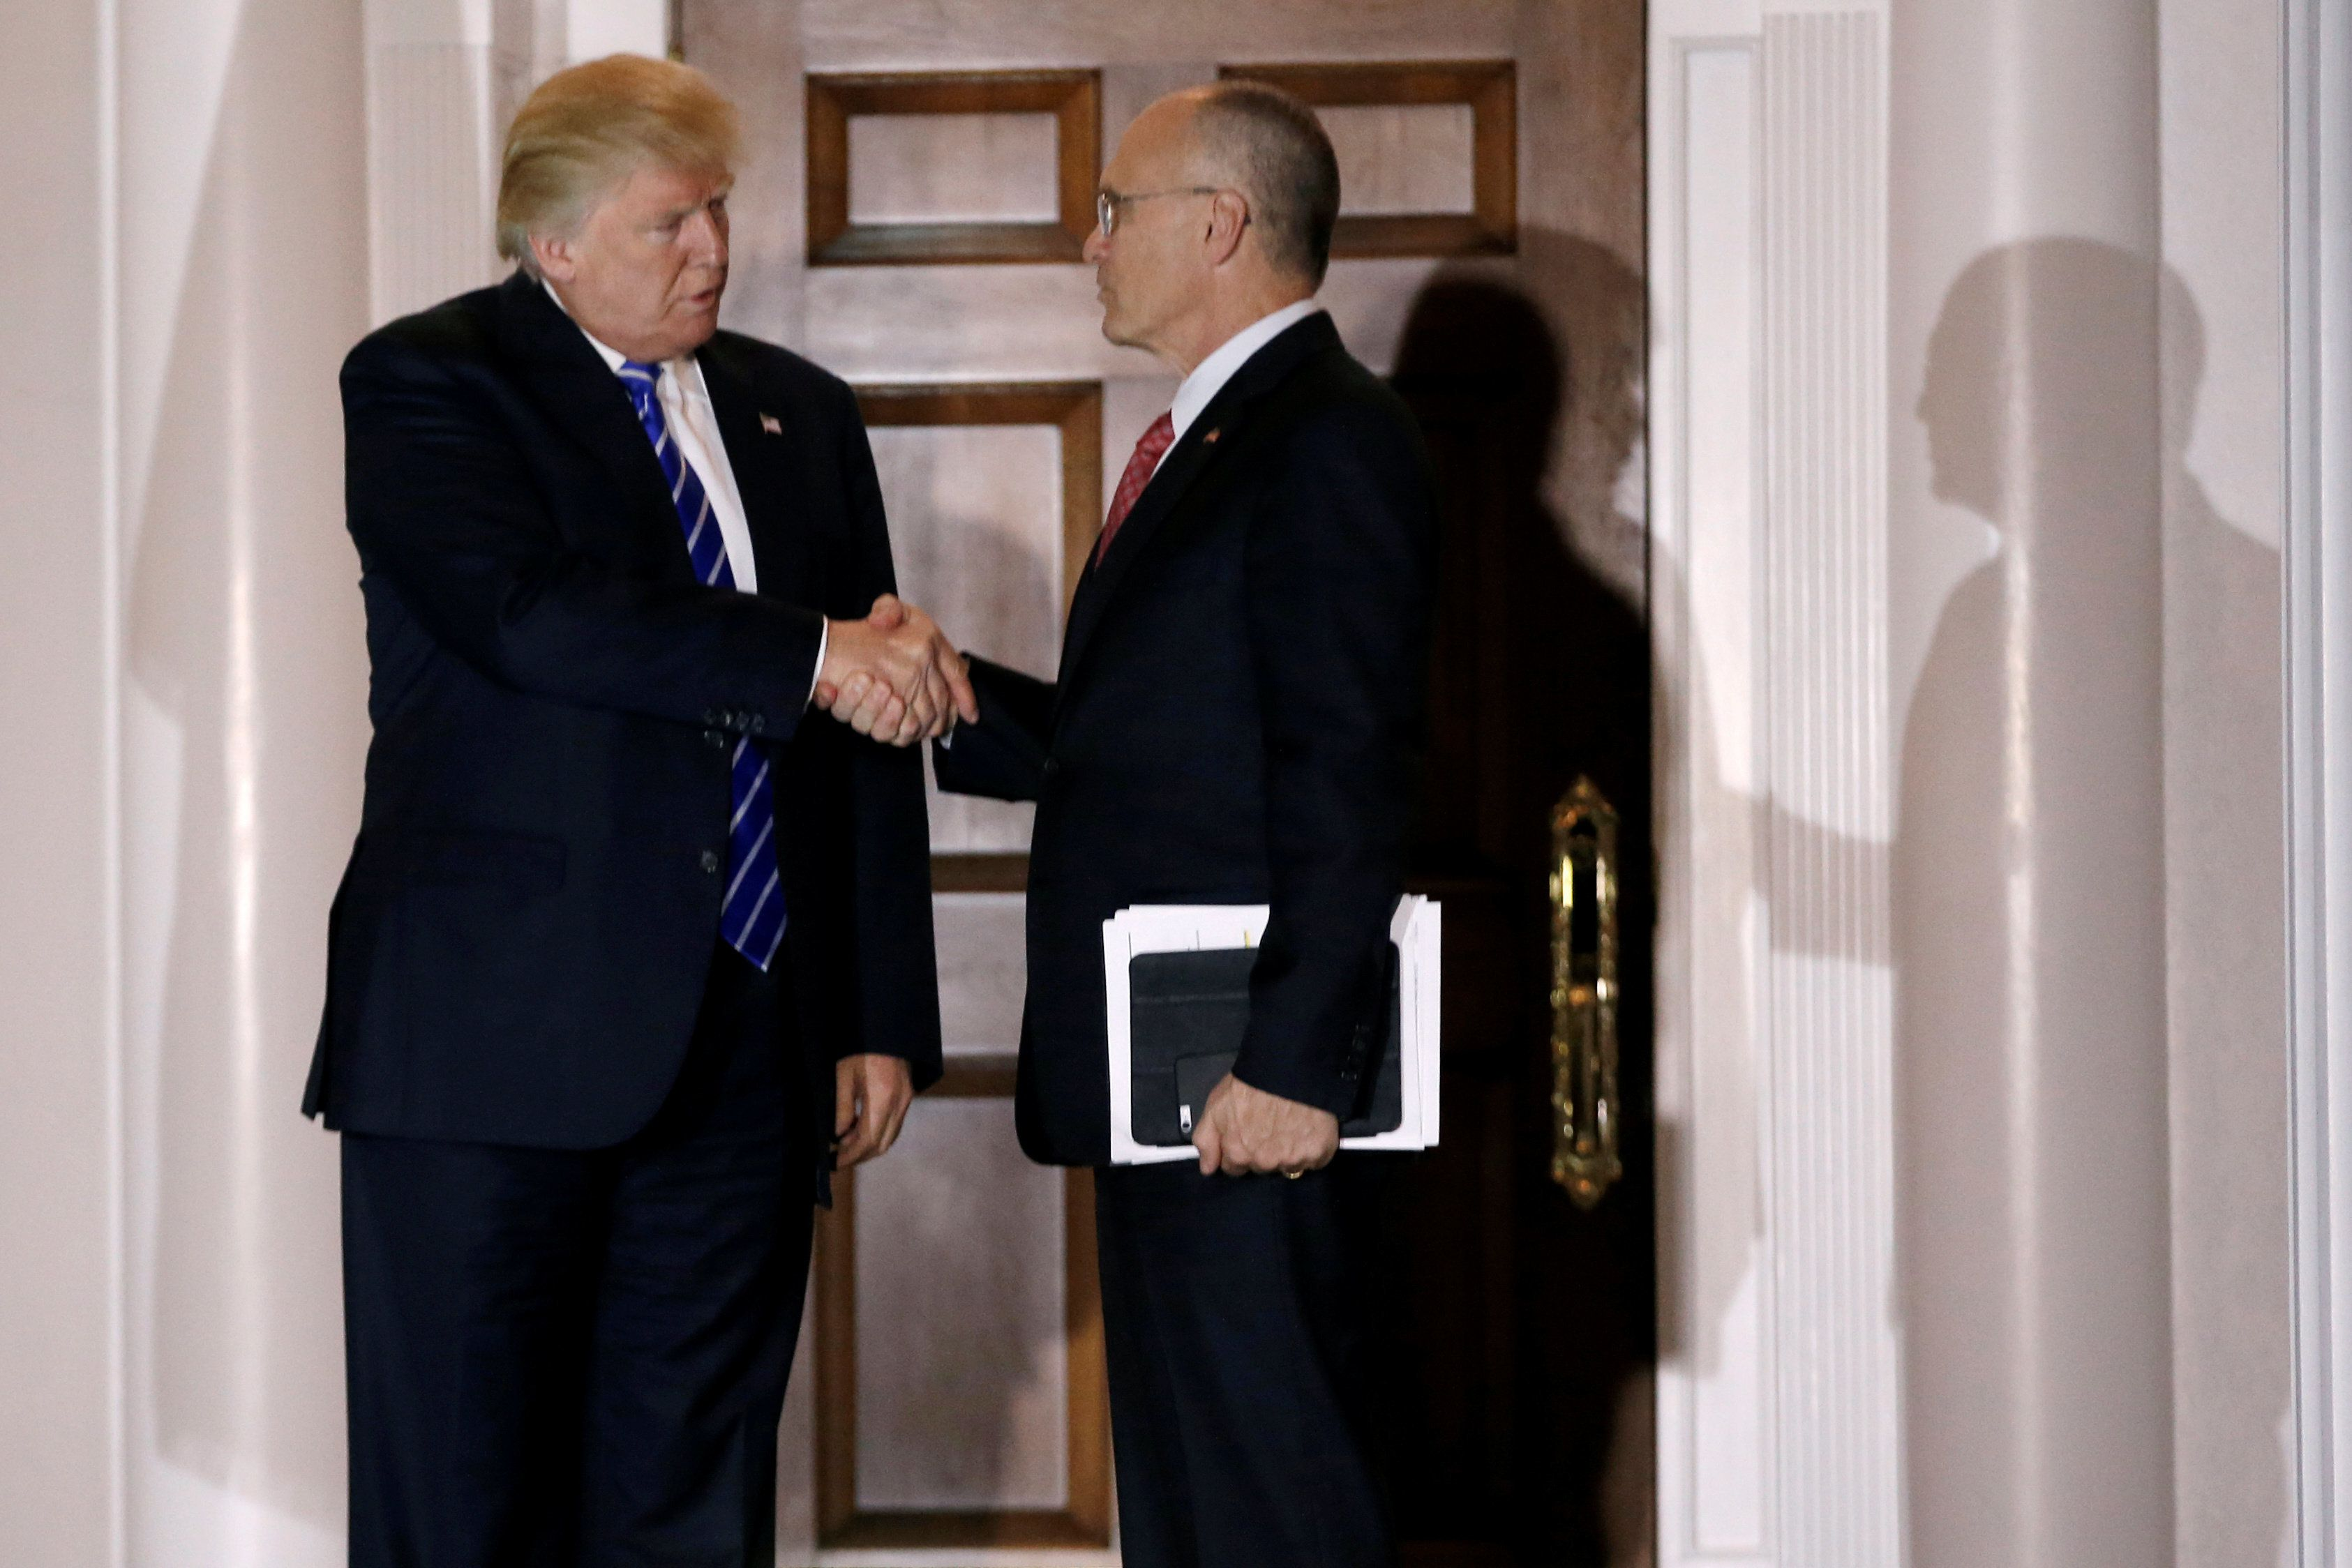 Andy Puzder, CEO of CKE Restaurants, shakes hands with U.S. President-elect Donald Trump after their meeting at the main clubhouse at Trump National Golf Club in Bedminster, New Jersey, U.S., November 19, 2016.  REUTERS/Mike Segar